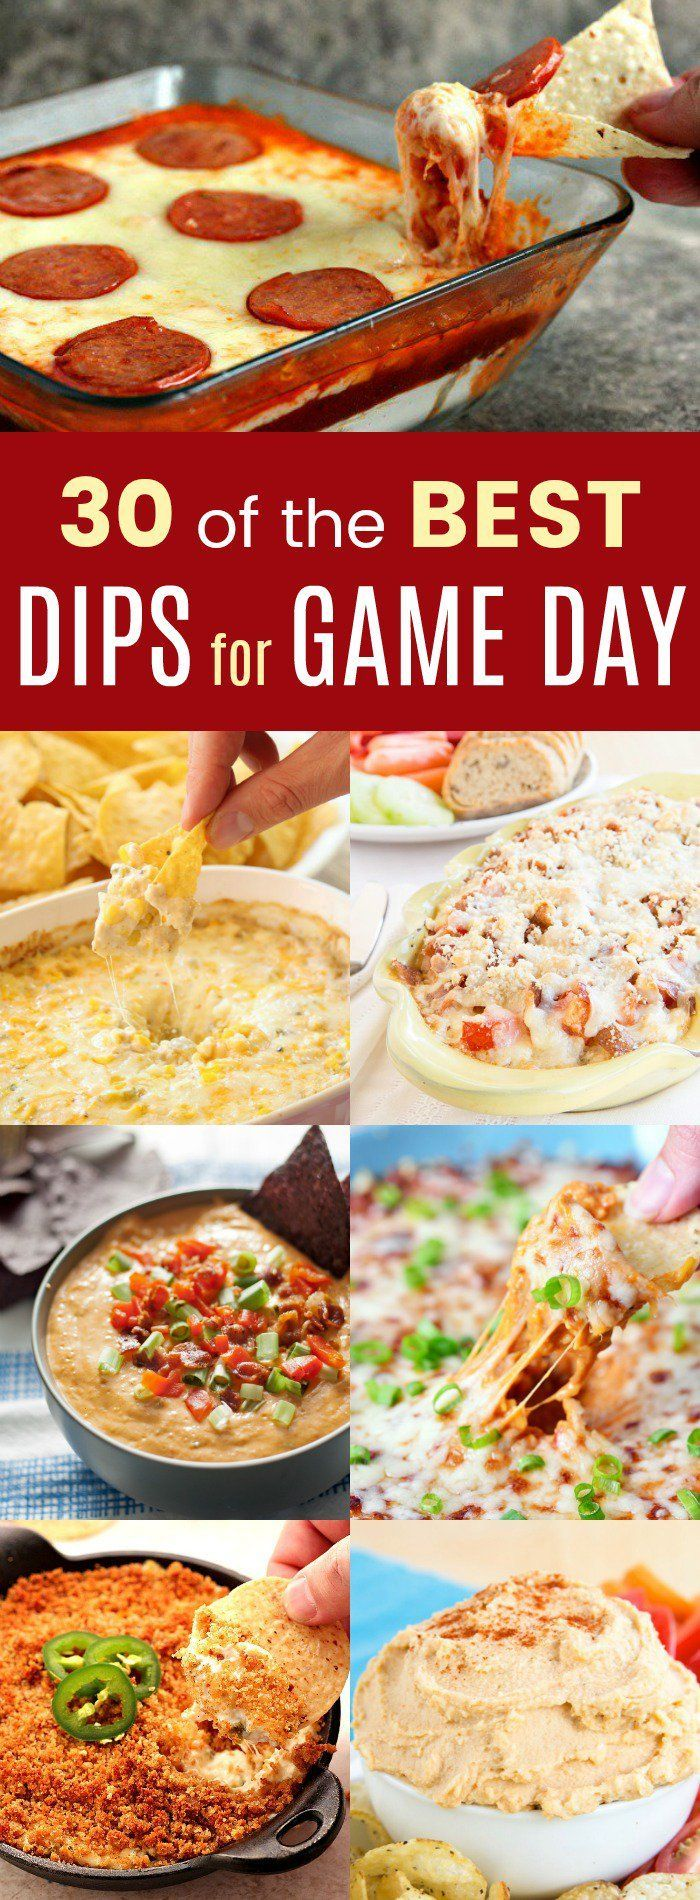 30 of the Best Dips for Game Day - ooey gooey hot cheese dip recipes, healthy hummus, hot or cold, dips for veggies, chips, and more, here are all the appetizers and snacks you need for your big game party! #dip #diprecipe #biggame #gameday #biggameparty #gamedaymenu #hotdip #hummus #football #footballfood